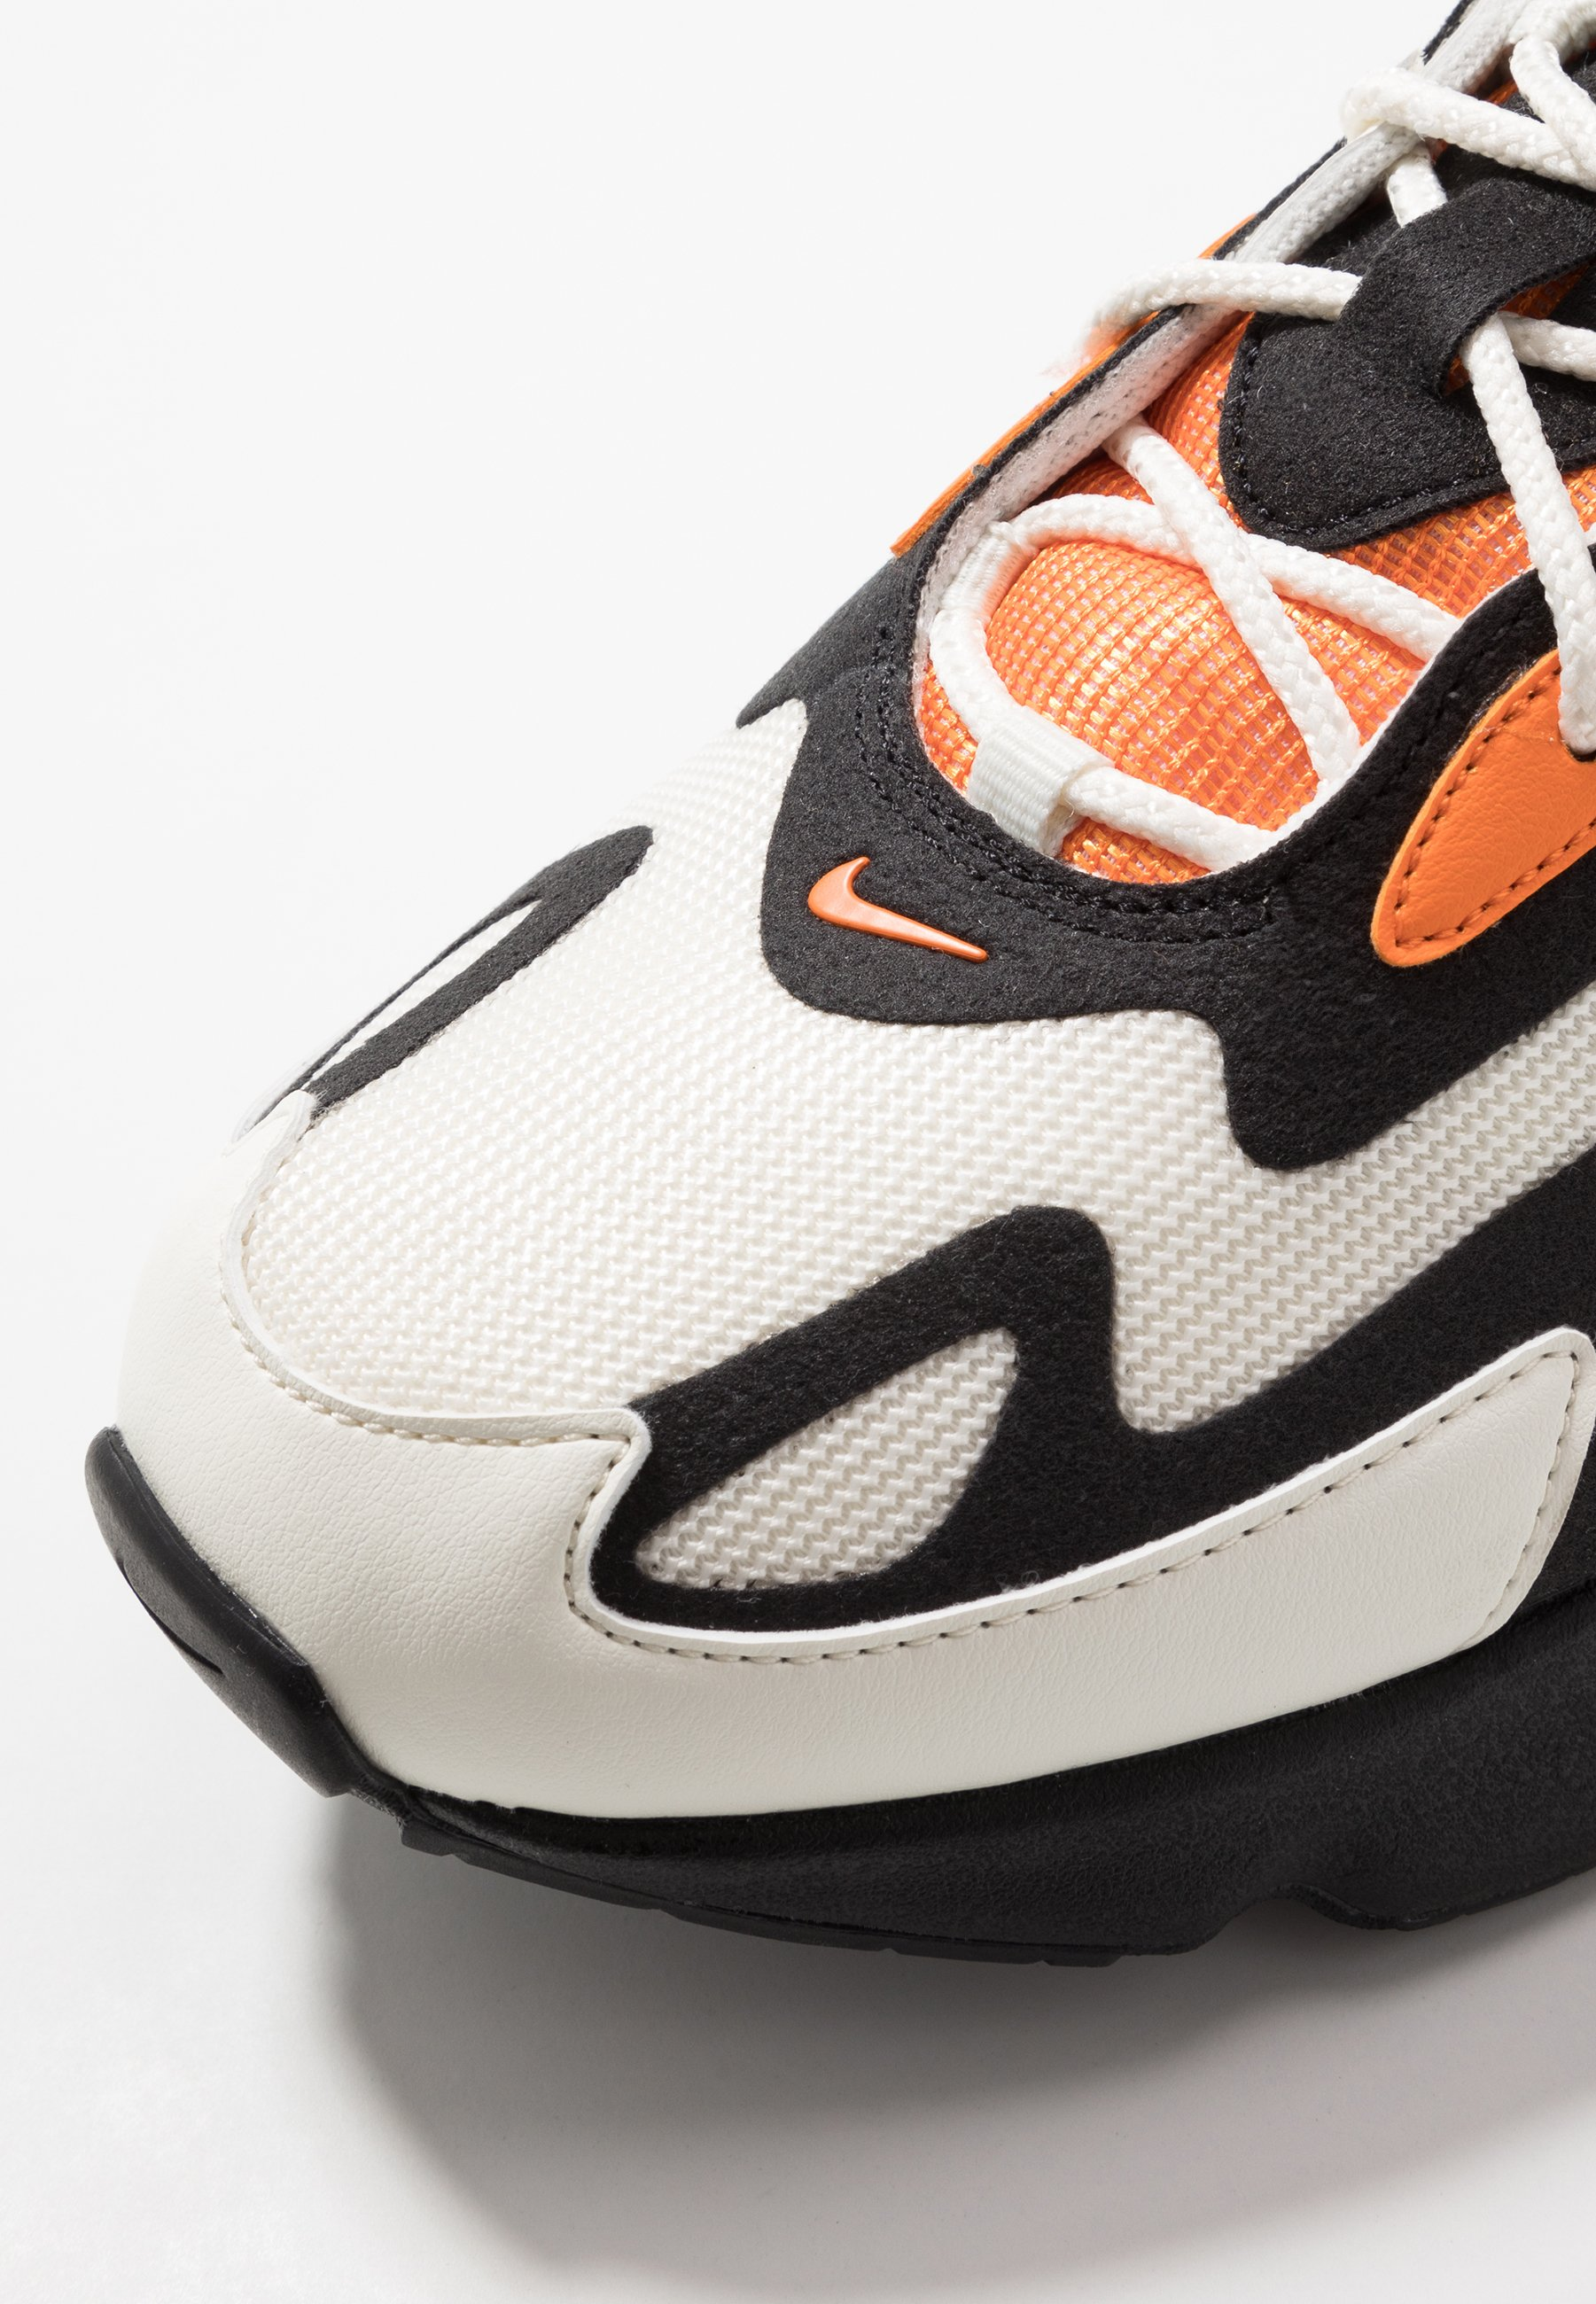 AIR MAX 200 Sneakers blackmagma orangesail